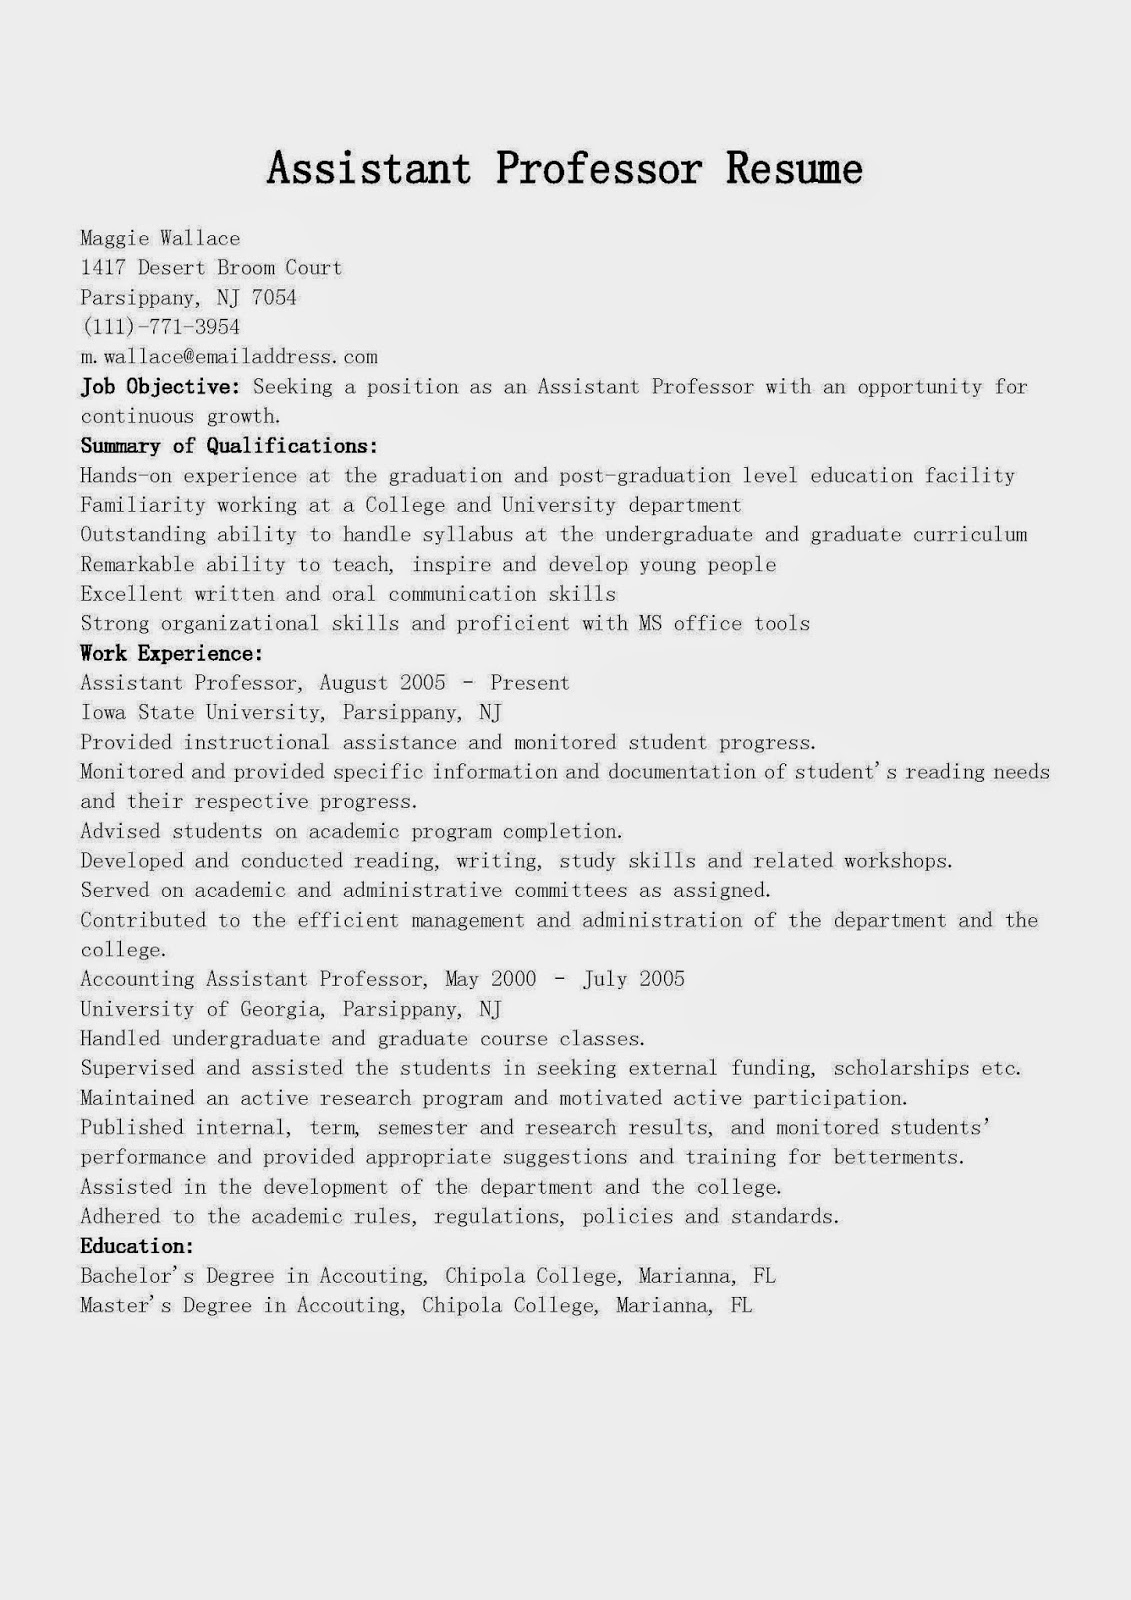 resume samples  assistant professor resume sample